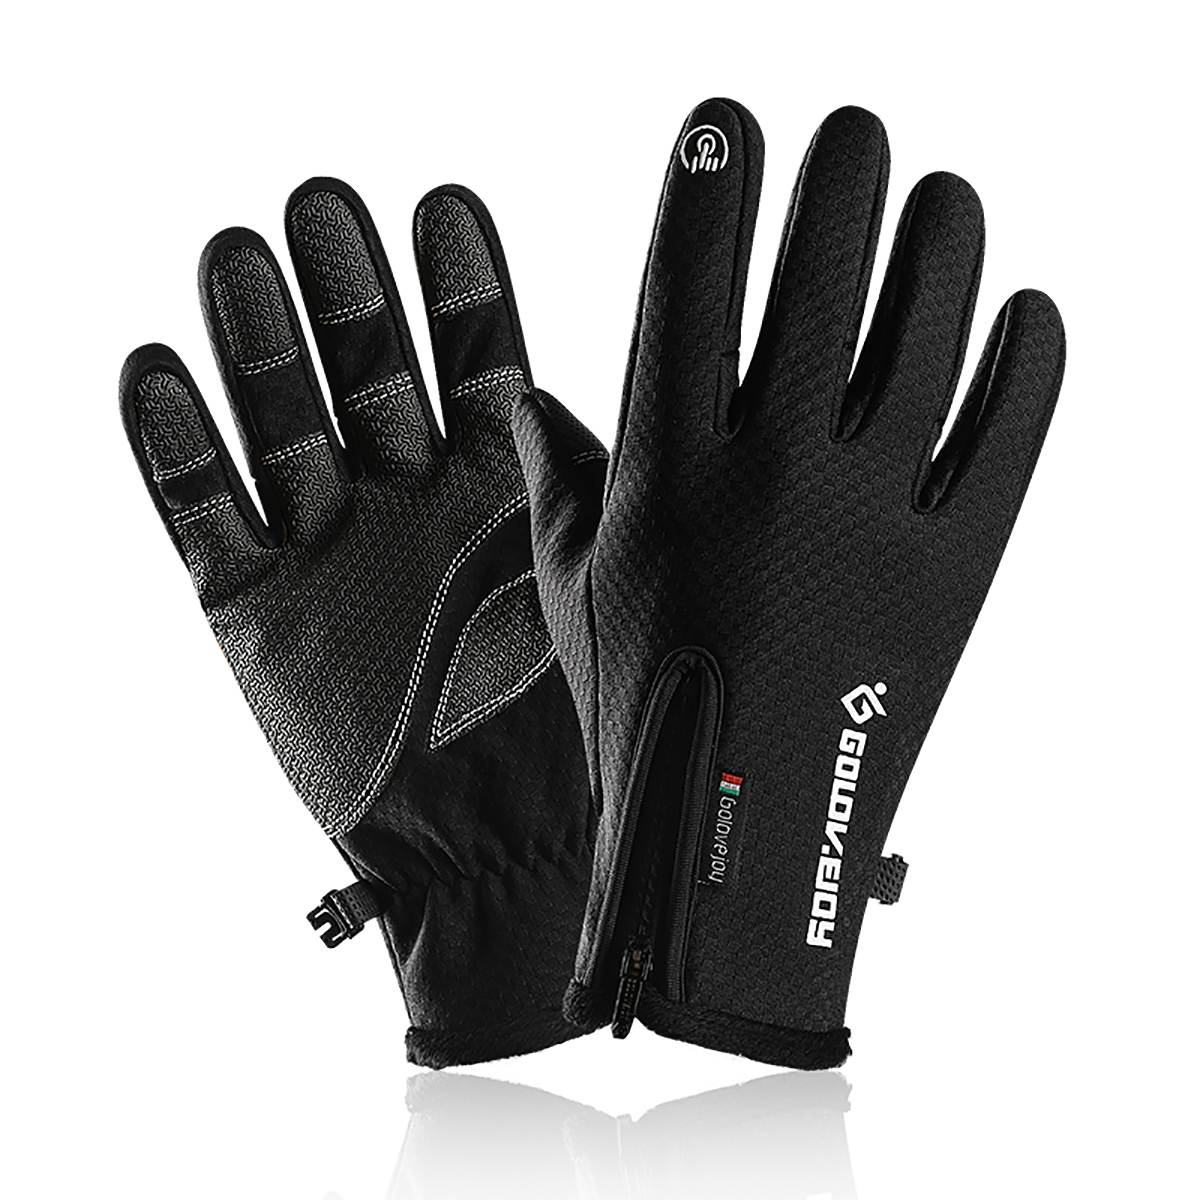 Men Woman Winter Warm Glove Windproof Anti-slip Thermal Touch Screen Riding Skiing Sport Gloves